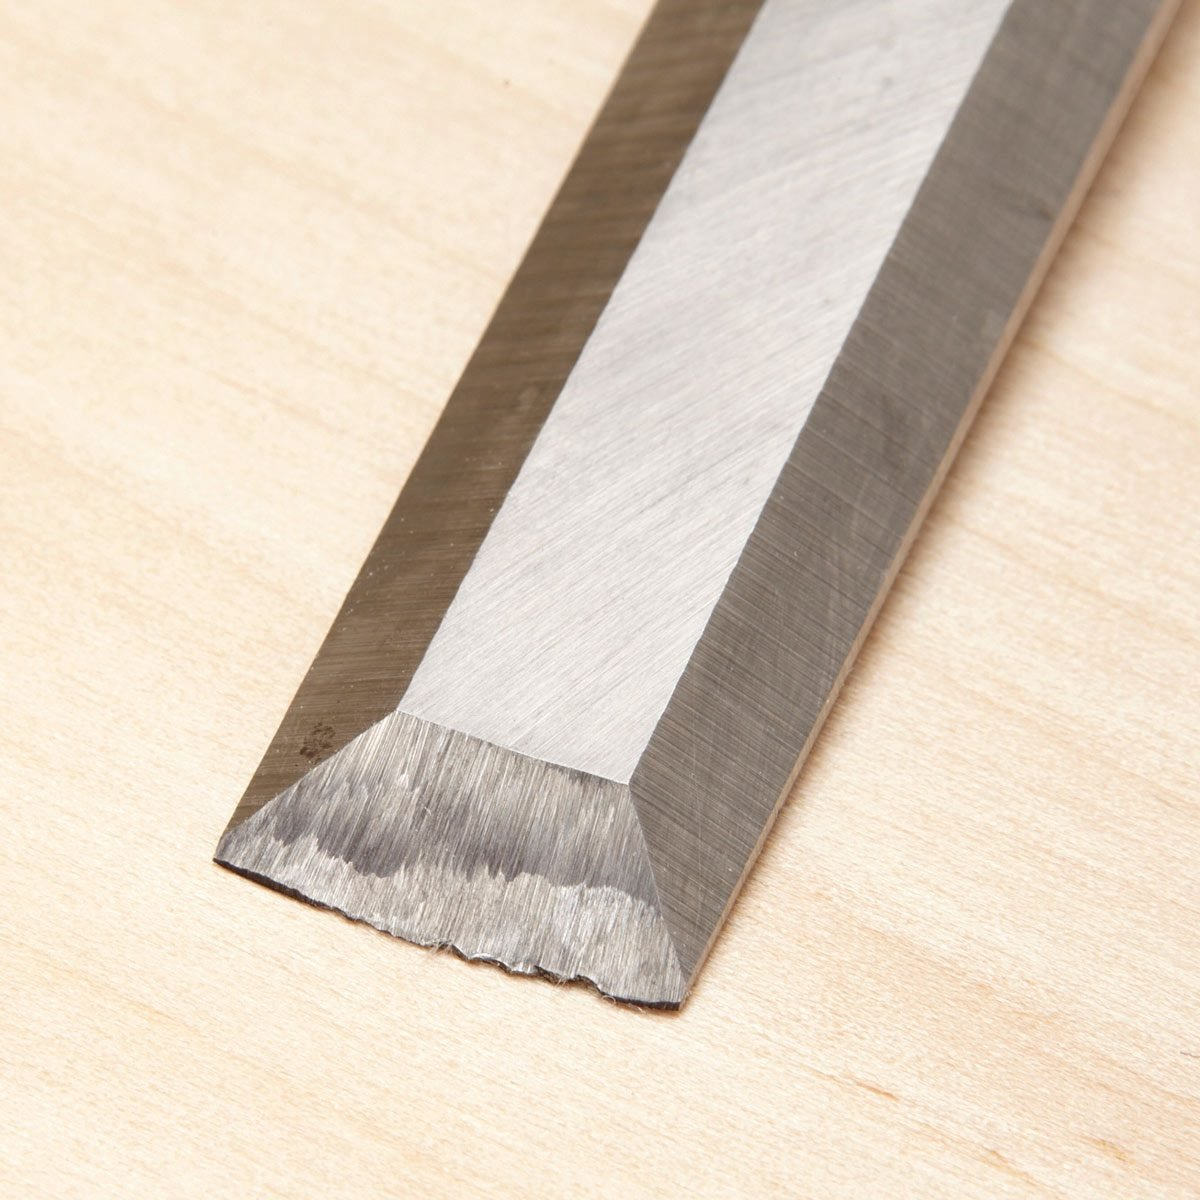 chipped chisel